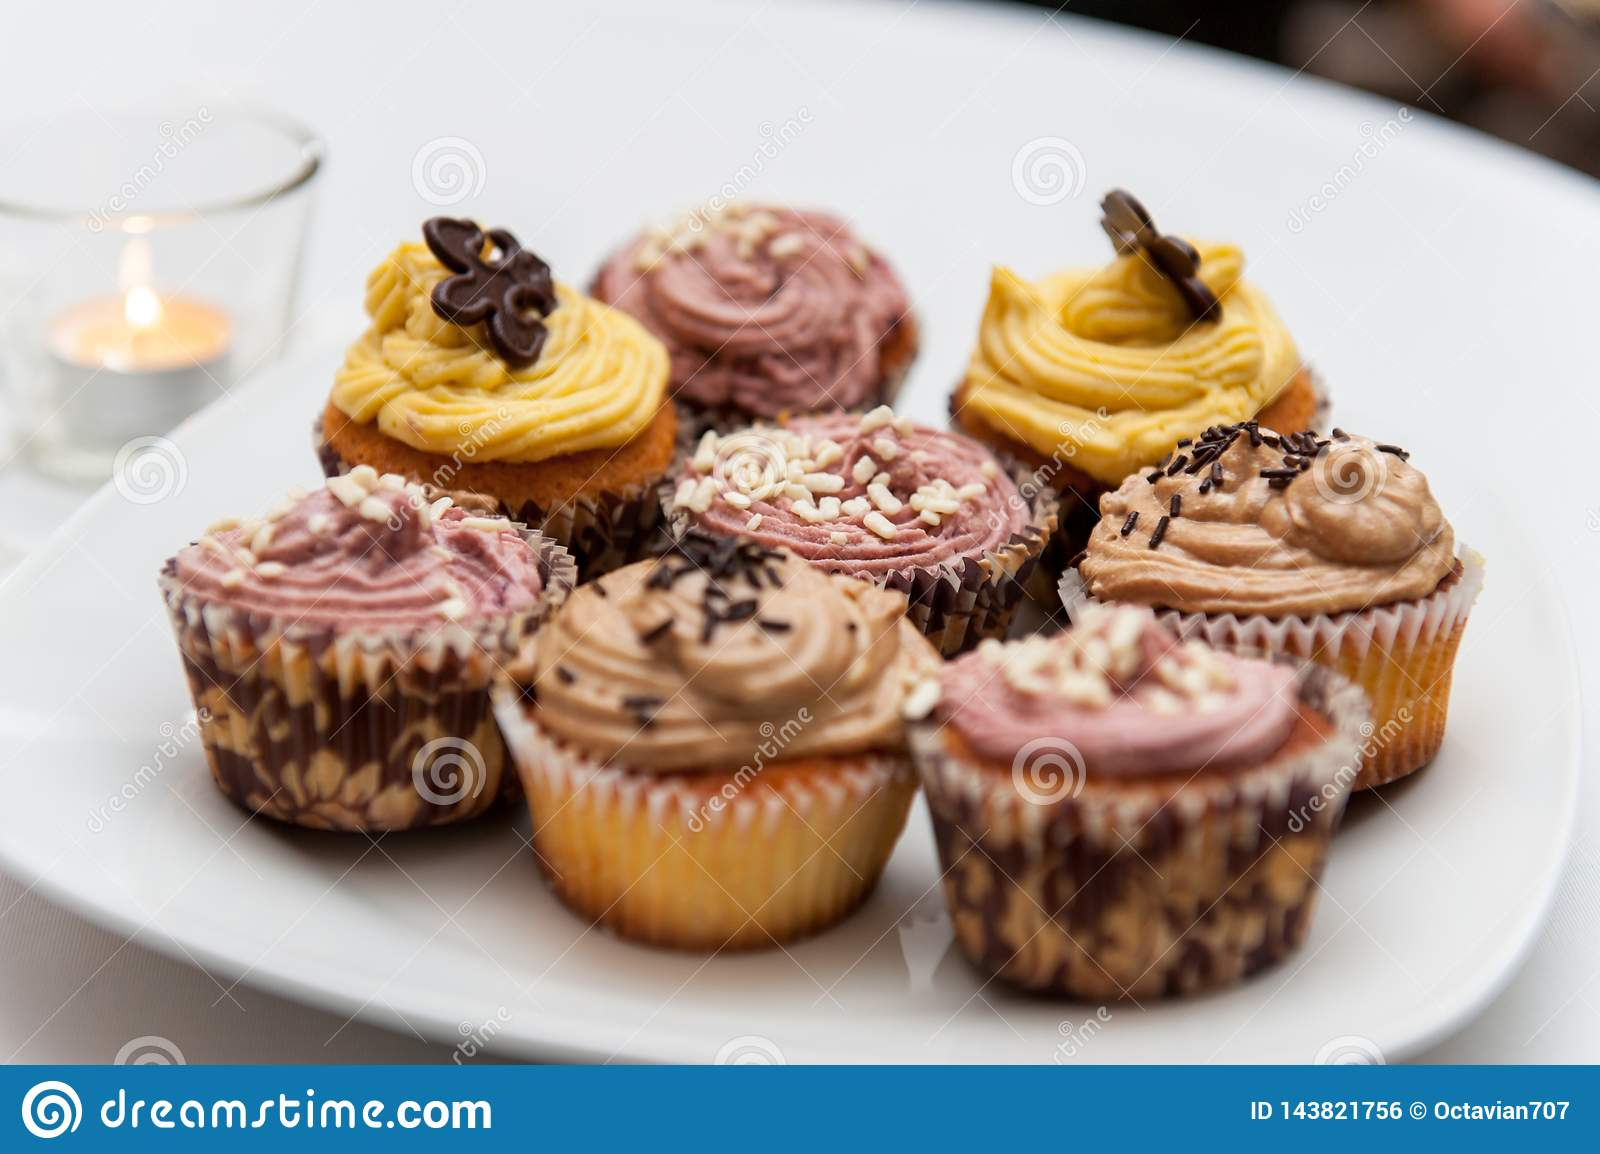 Cupcakes on white porcelain plate